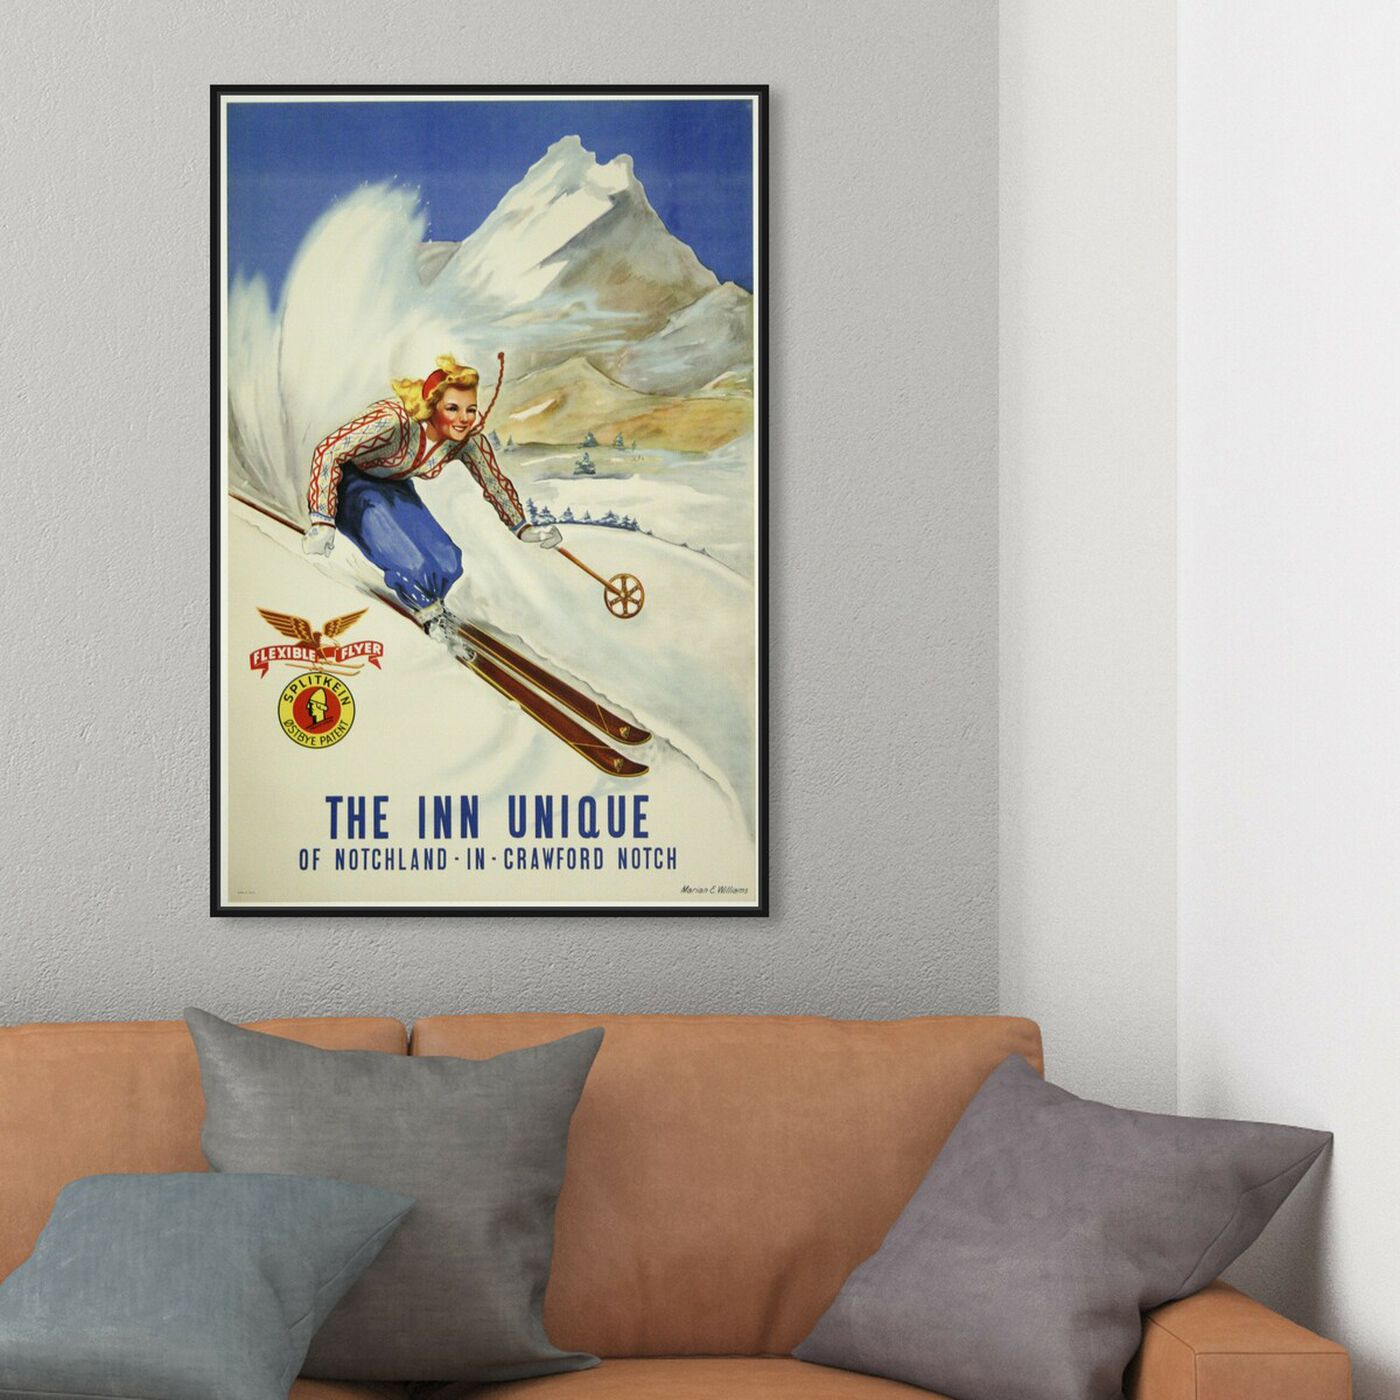 Hanging view of The Inn Unique featuring sports and teams and skiing art.